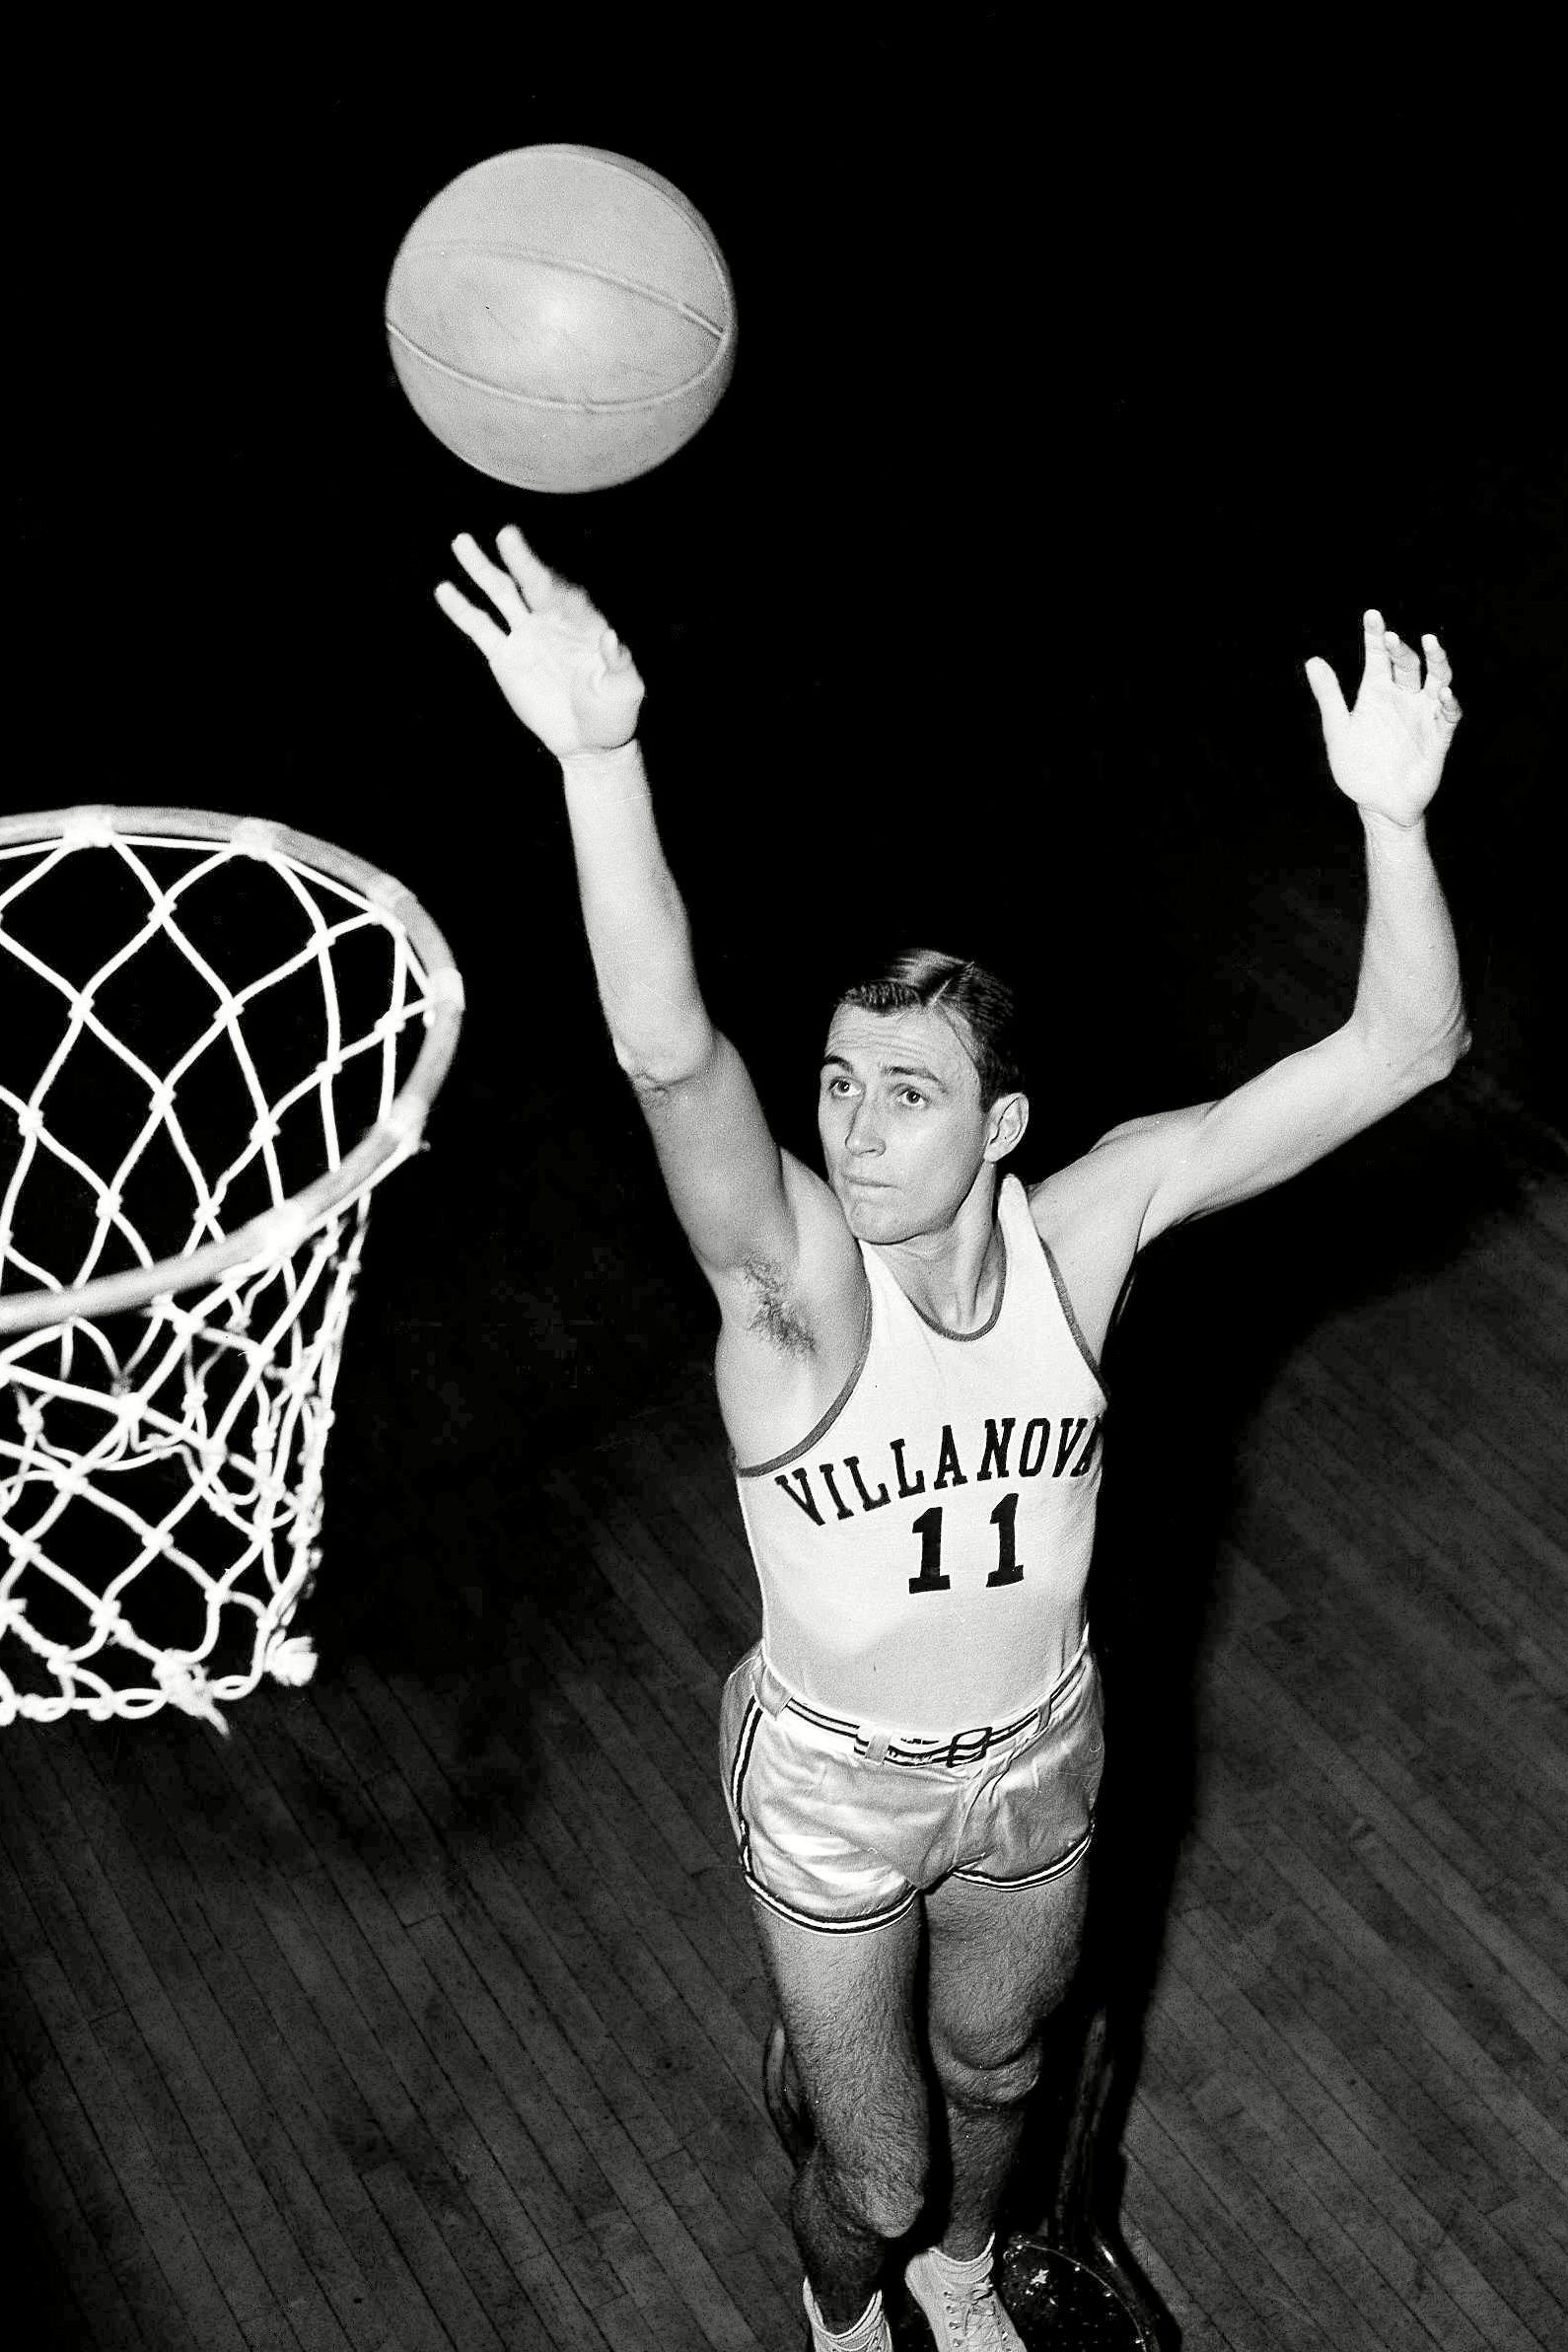 Mandatory Credit: Photo by Anonymous/AP/Shutterstock (6666981a) Paul Arizin Paul Arizin of Villanova shown, topped the voting in the 1950 Associated Press All-America collegiate basketball team. Arizin, top scorer in the country for major schools, was second in the voting. Location unknown Paul Arizin, USA